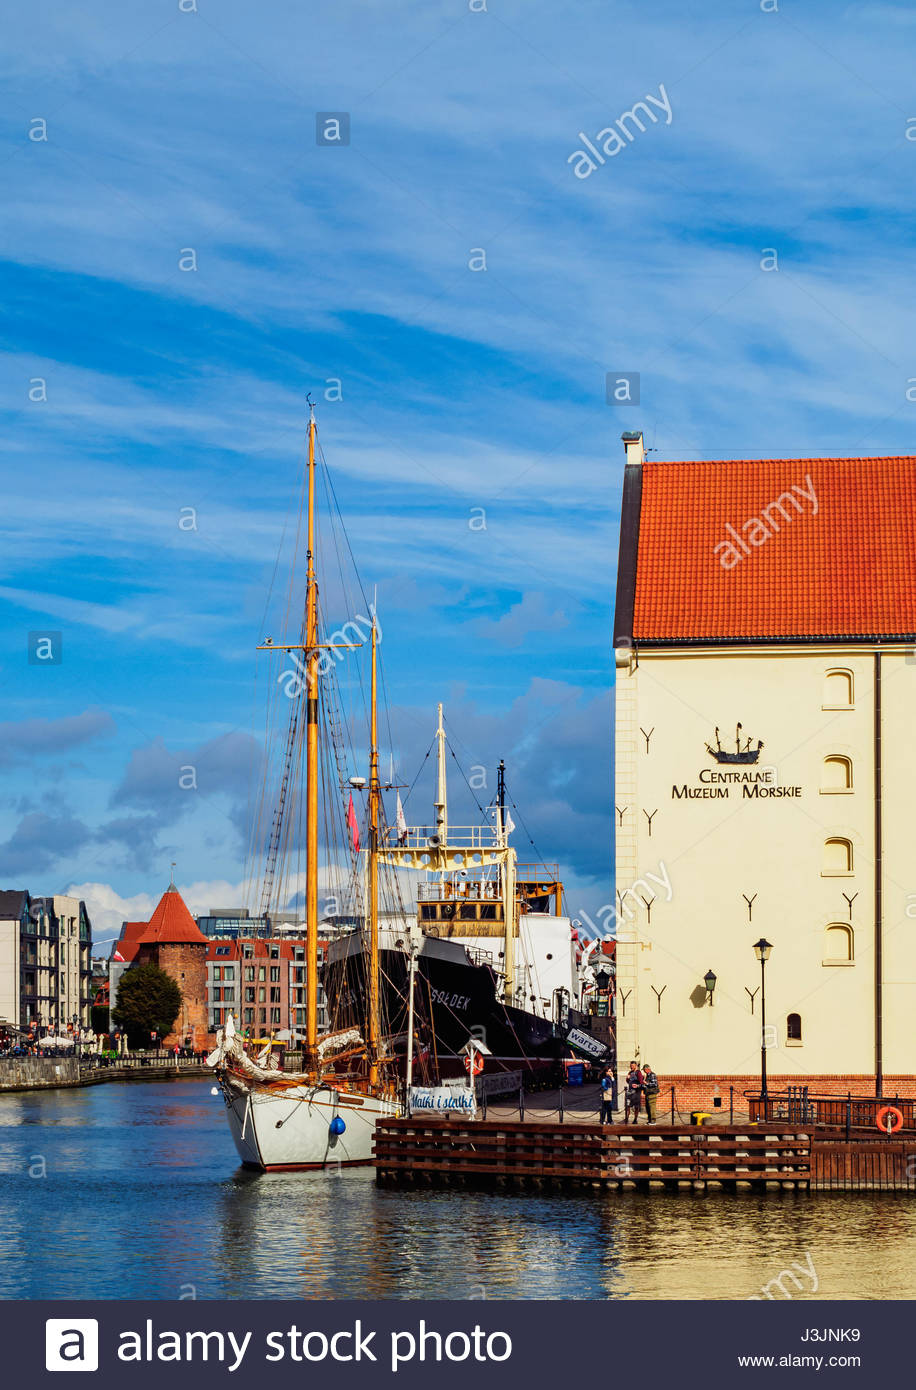 Brama Wyżynna The Baltic Coast and Pomerania, Poland, Pomeranian Voivodeship, Gdansk, Old Town, Ships on the ...